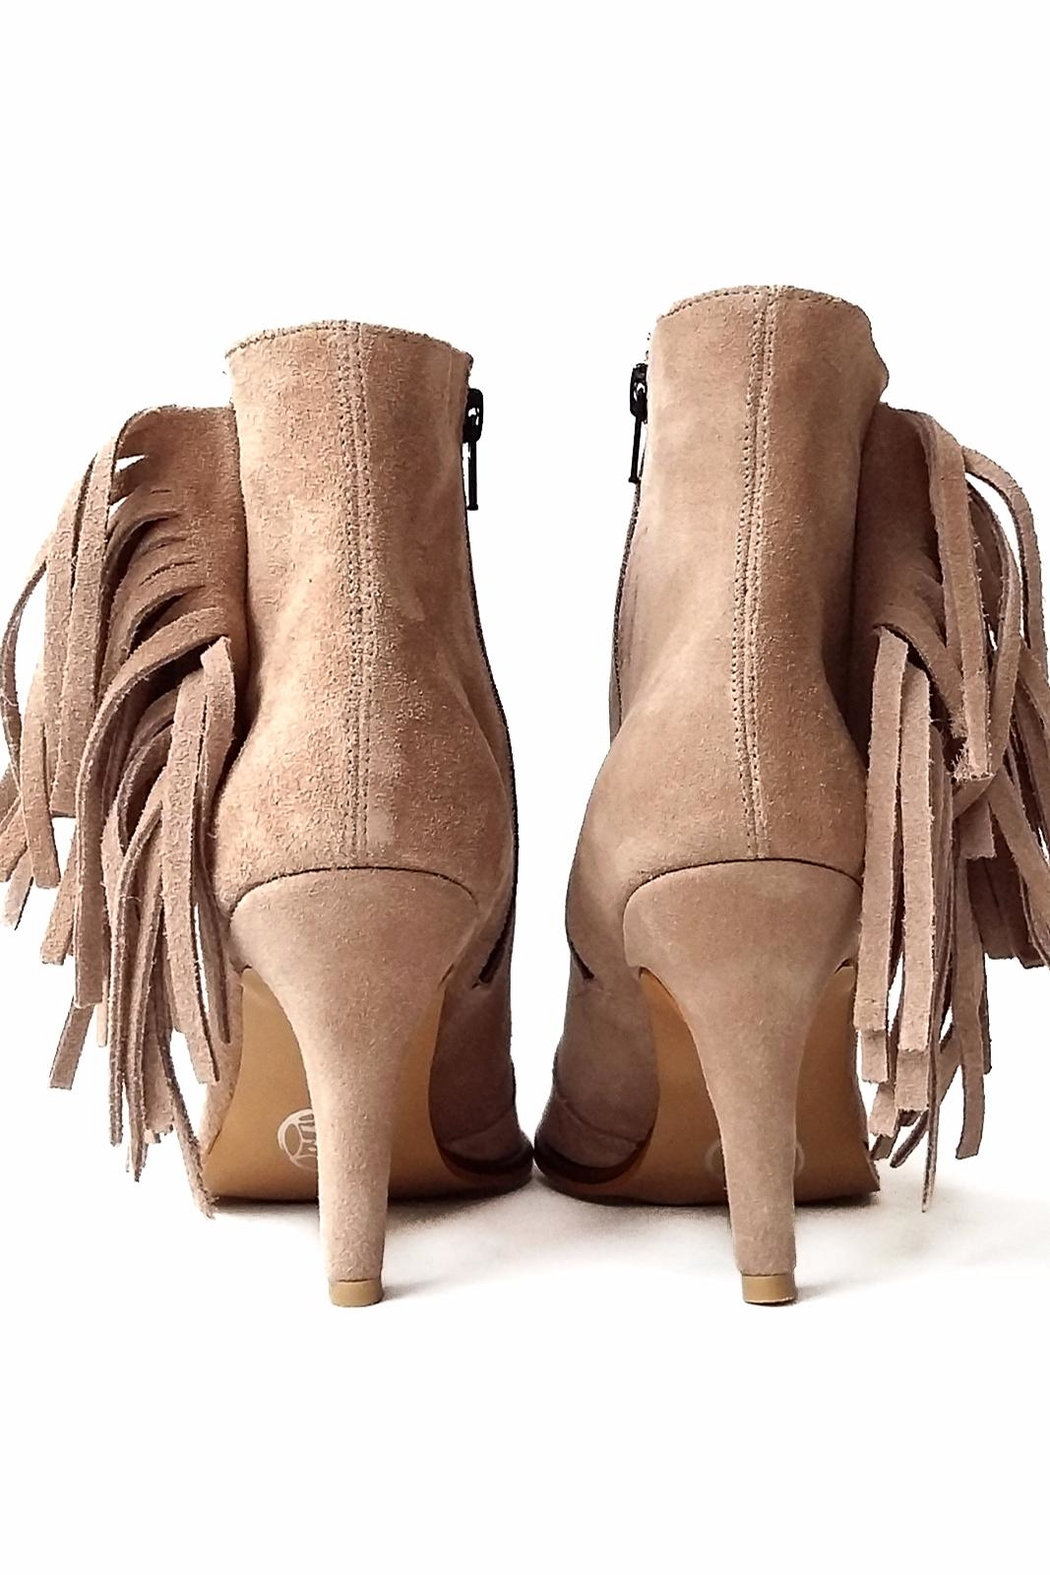 MIYE COLLAZZO Beige Suede Bootie - Side Cropped Image